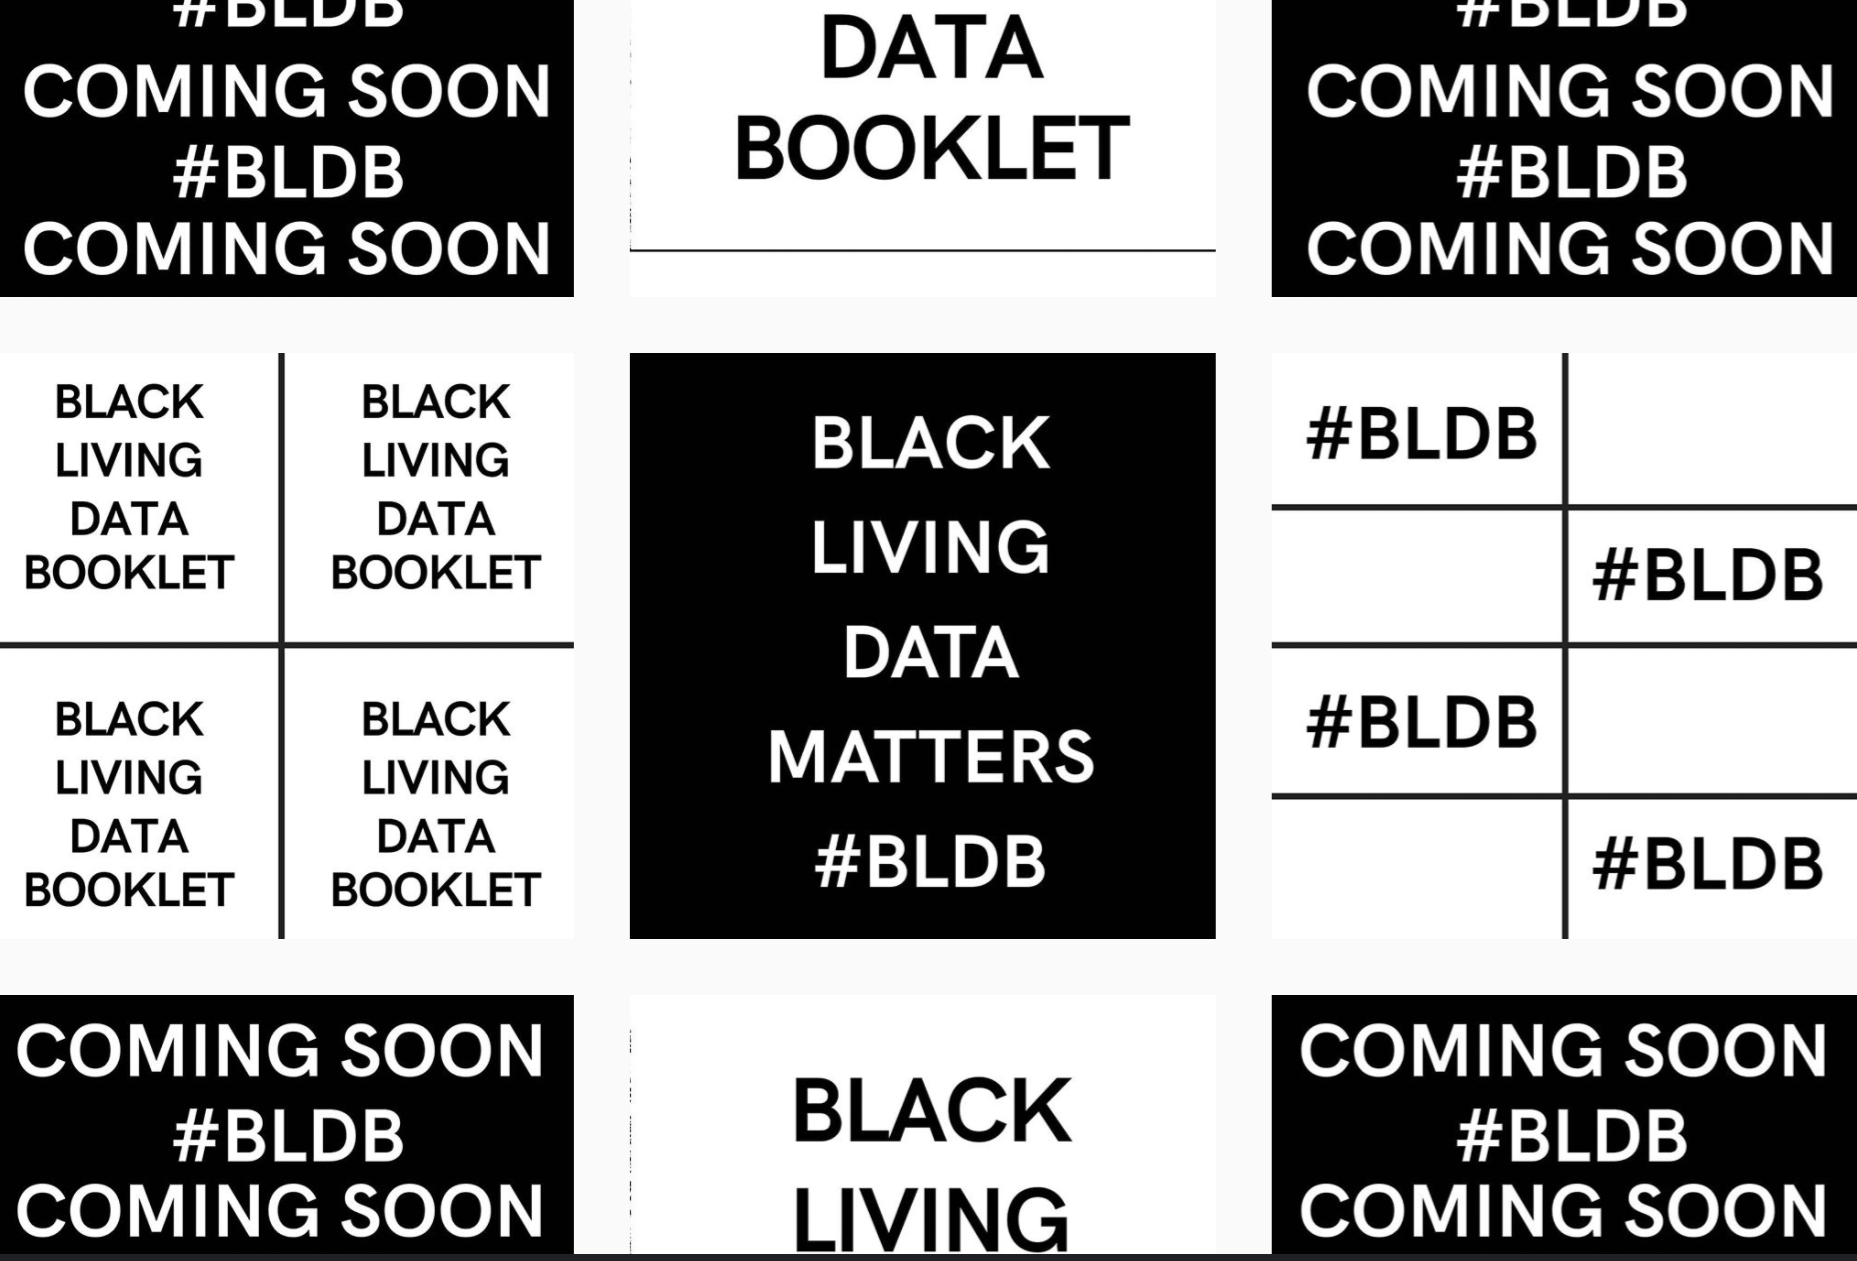 Collage of text-based images from the Black Living Data Booklet that read 'Black Living Data Matters #BLDB', 'Black Living Data Booklet', and '#BLDB Coming Soon'